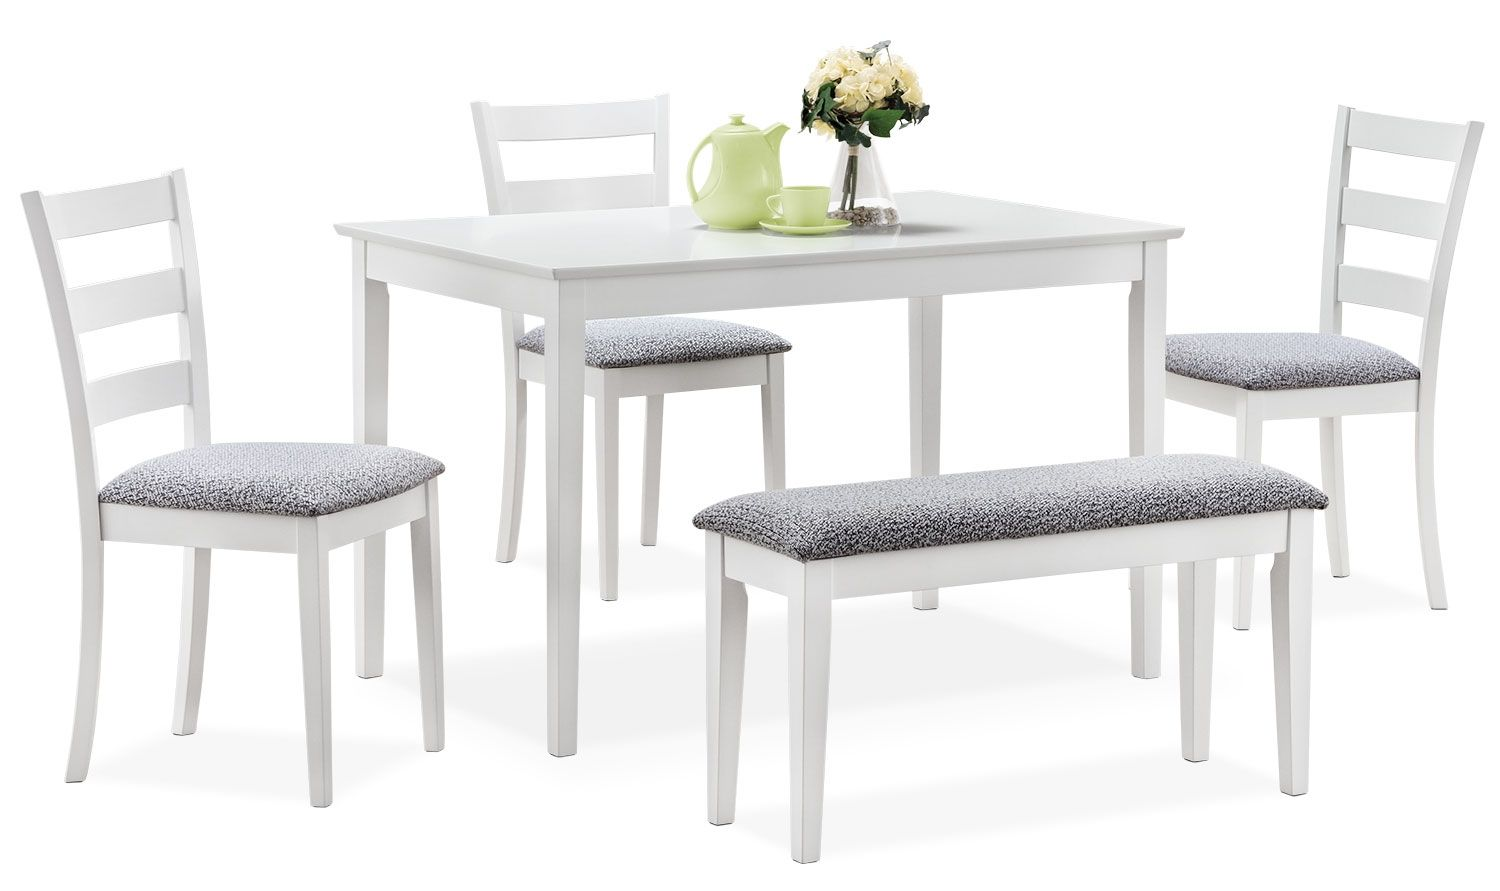 Monarch 5 Piece Dining Package White